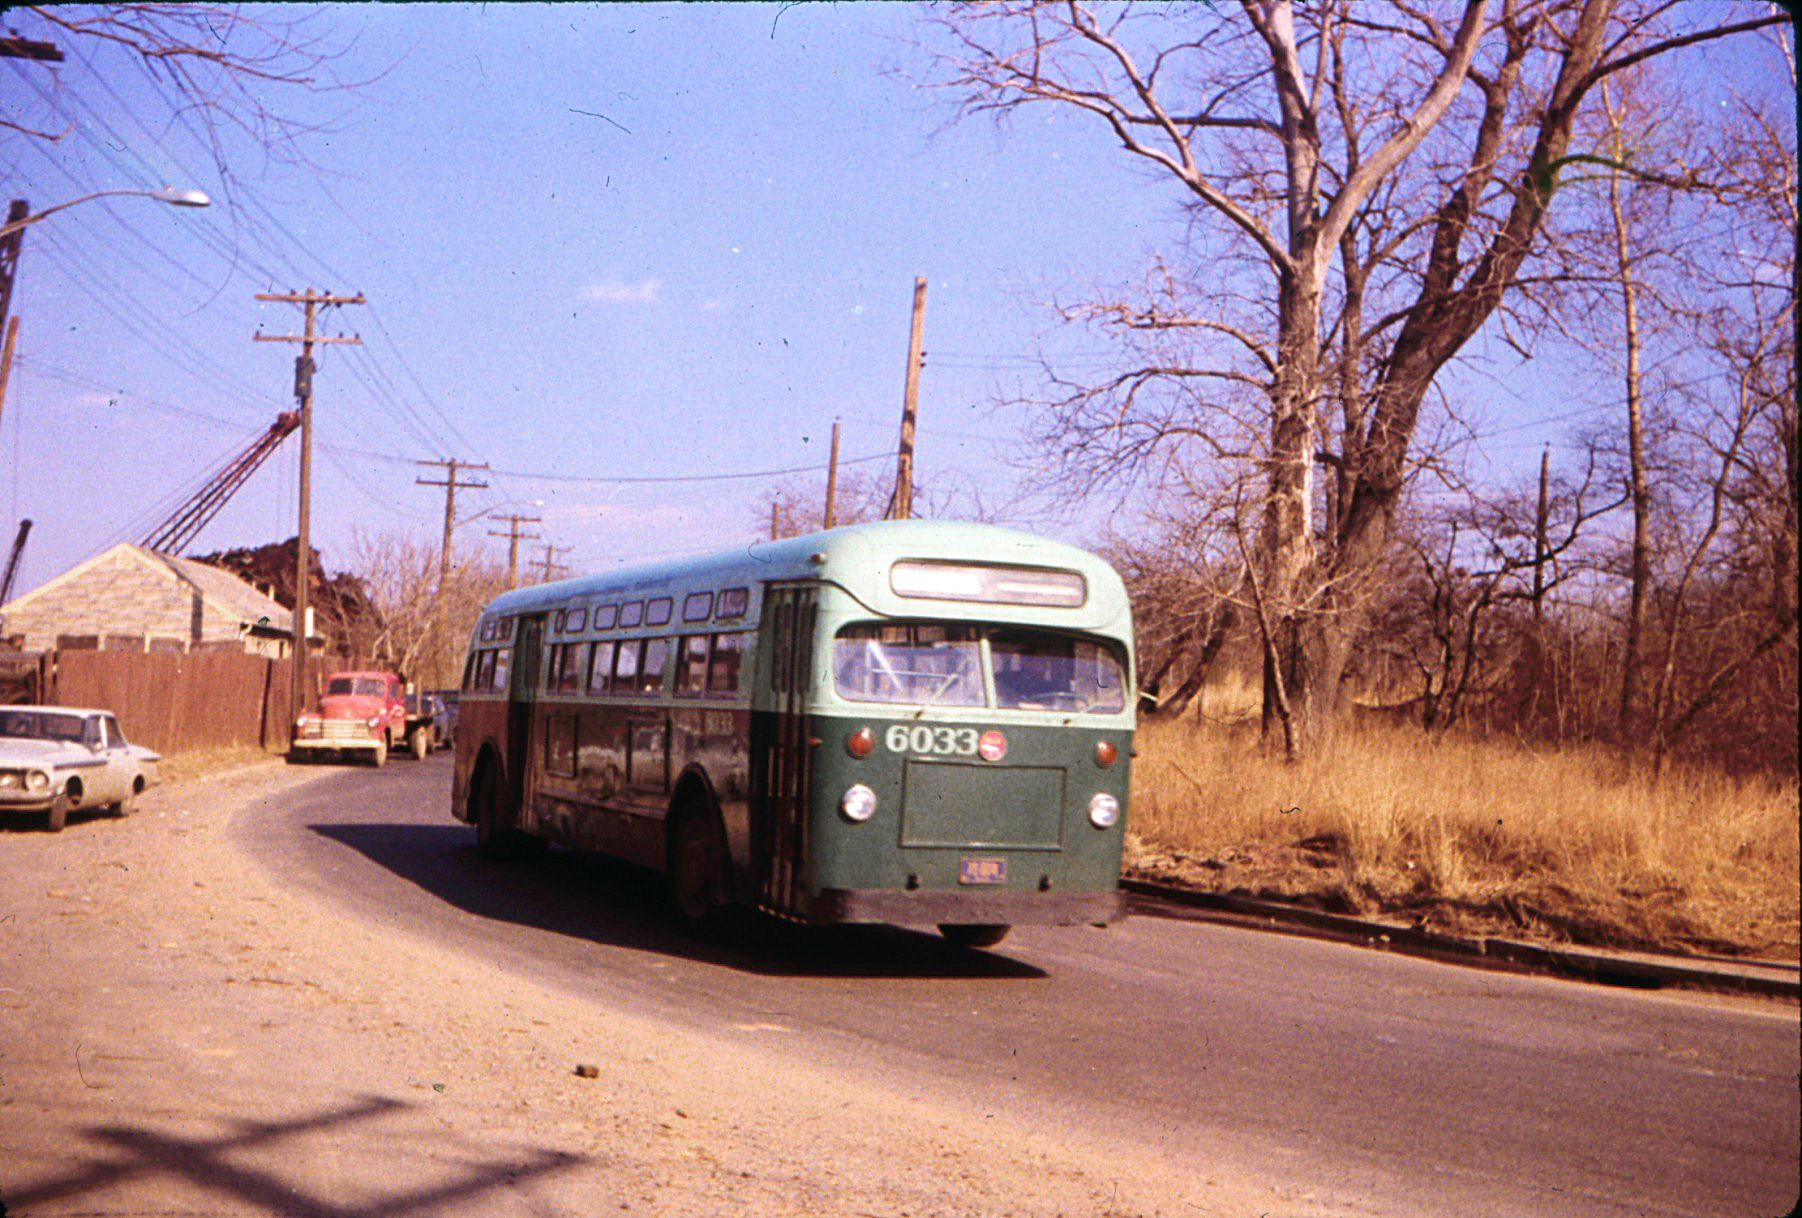 Buses, The o'jays and Walking on Pinterest |Photos Old City Buses 1950